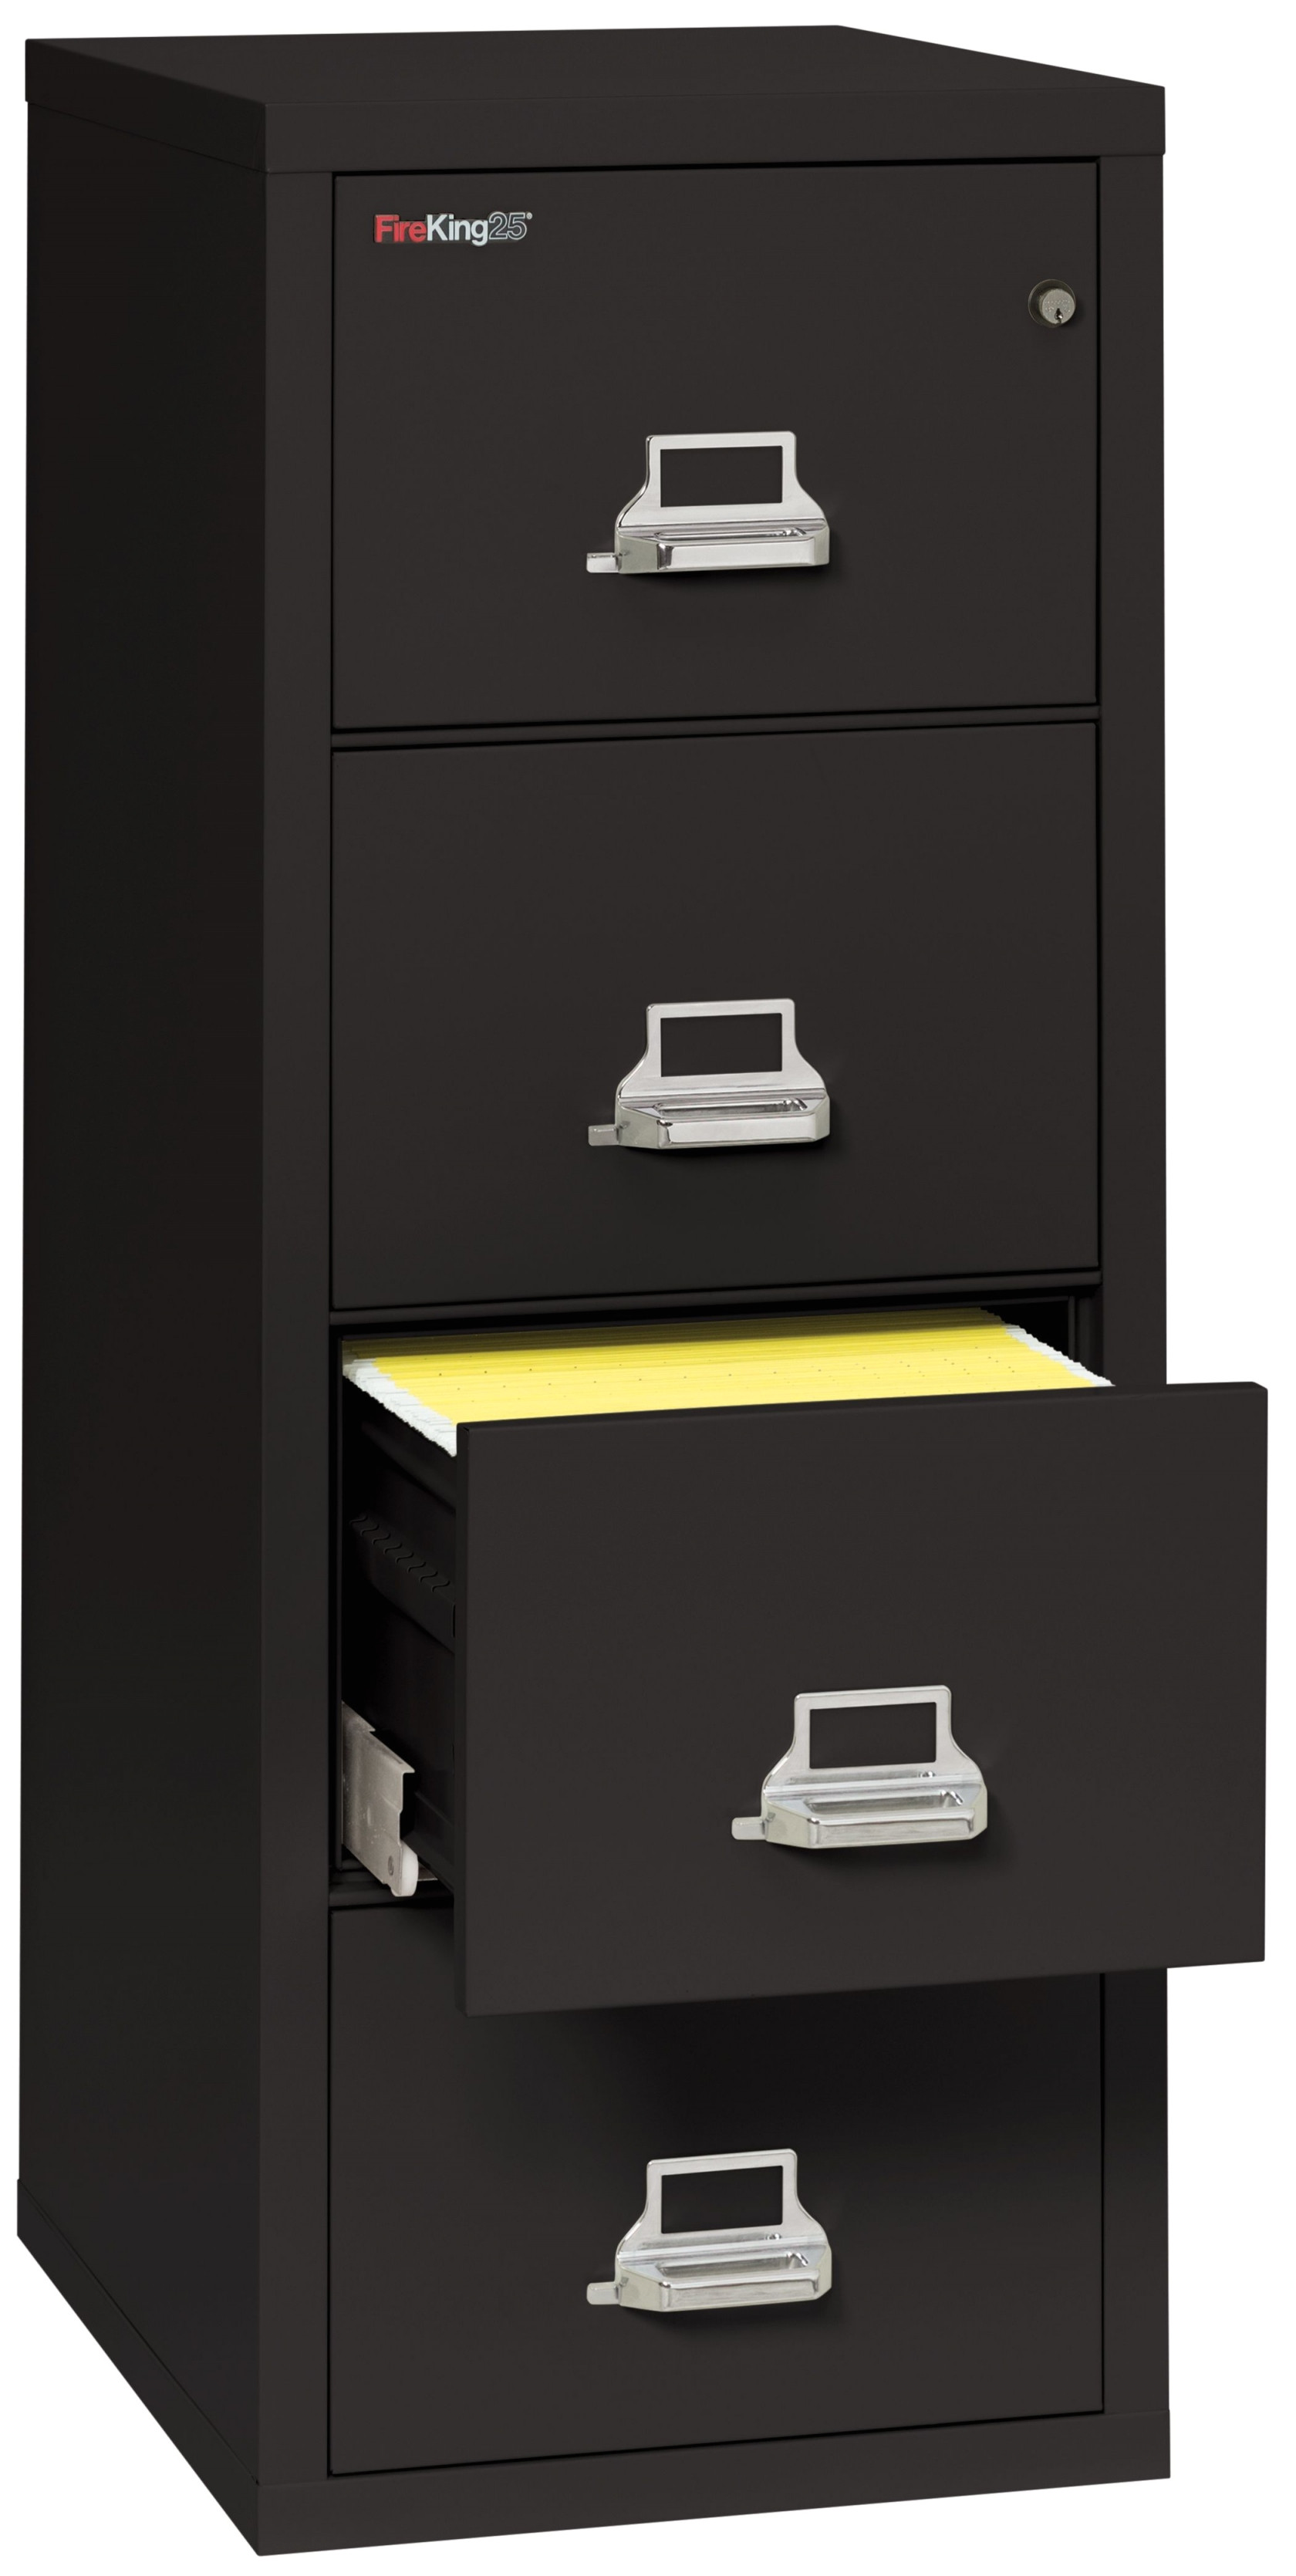 image of fire king file cabinets lost keys